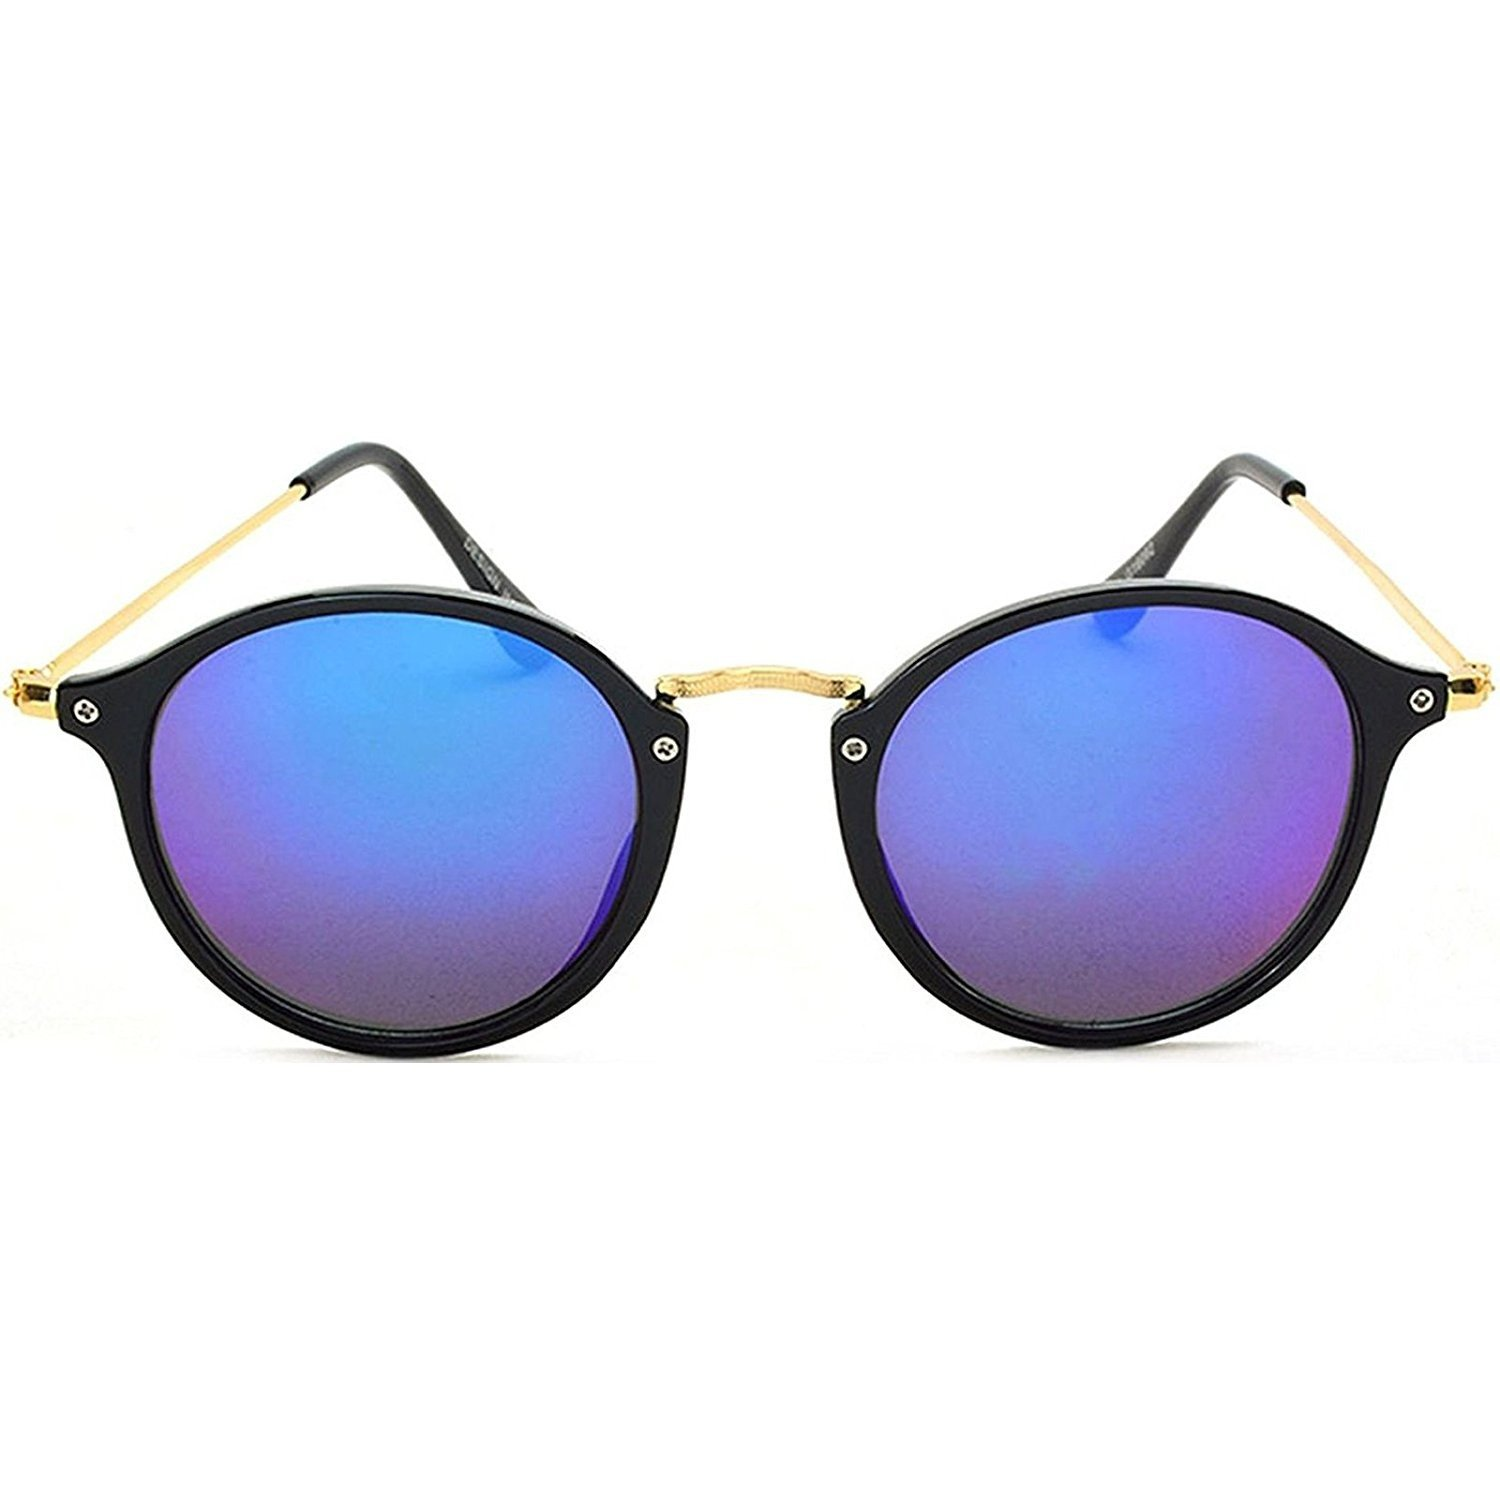 baf807eb94e Dervin Black Frame Blue Shade Lens Oval Round Sunglasses for Men   Women   Amazon.in  Clothing   Accessories